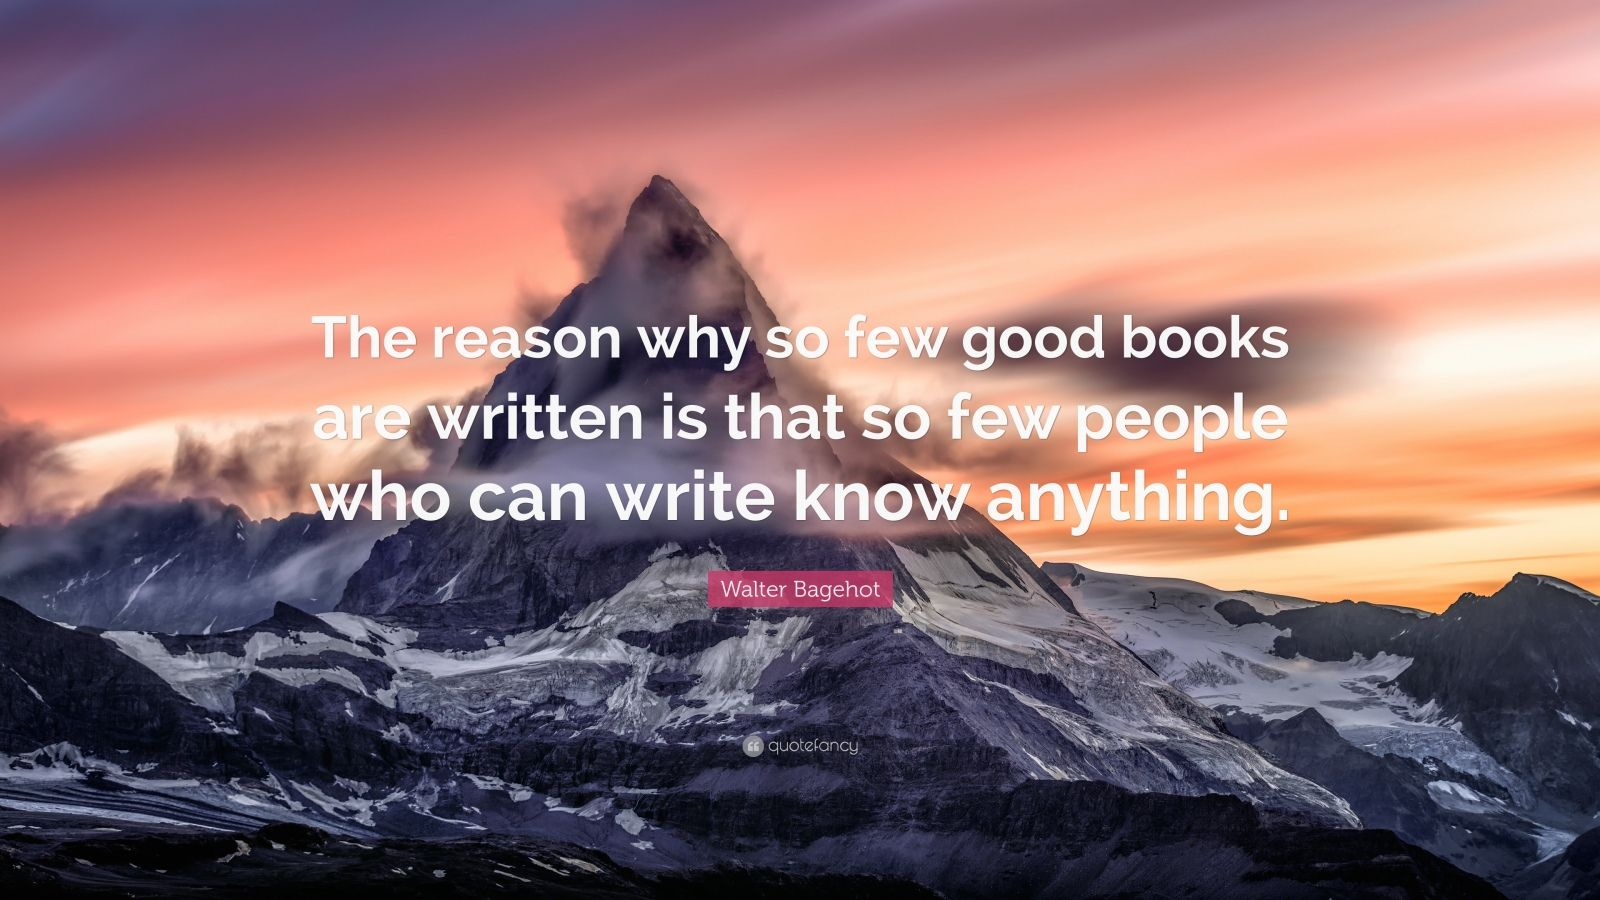 """Walter Bagehot Quote: """"The reason why so few good books are written is that so few people who can write know anything."""""""